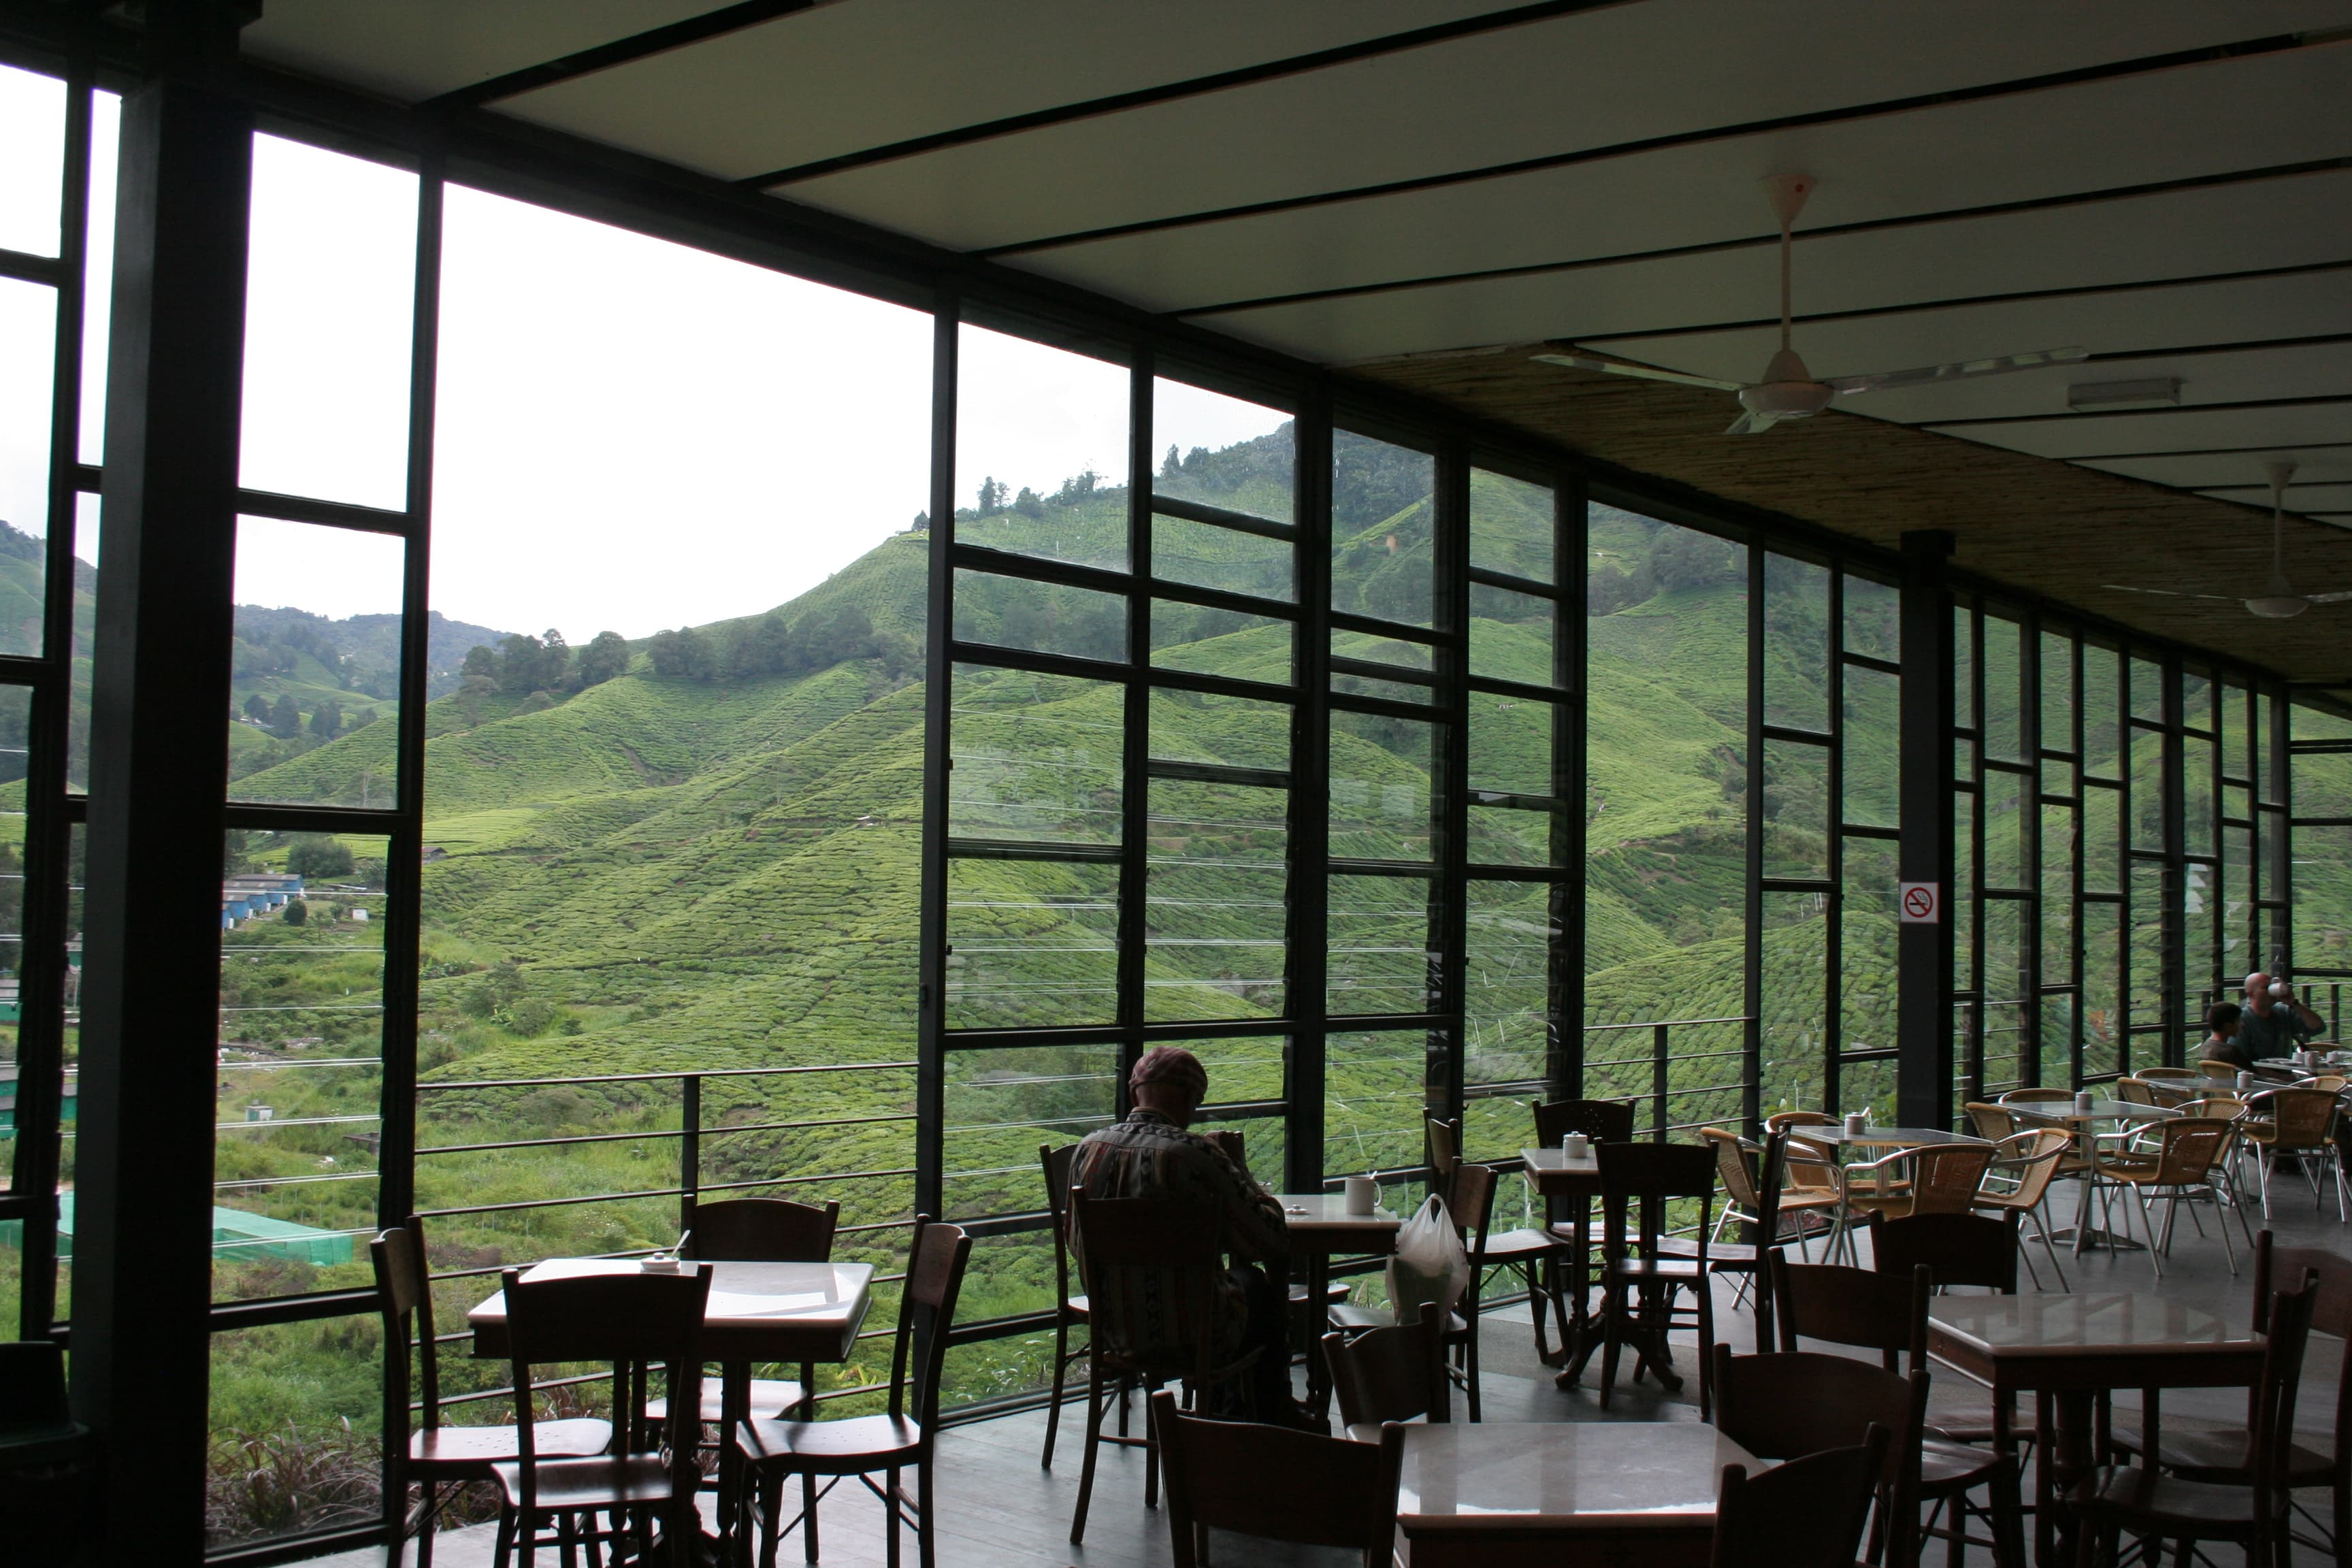 Boh Tea Plantation Cafe in Cameron Highlands, Malaysia